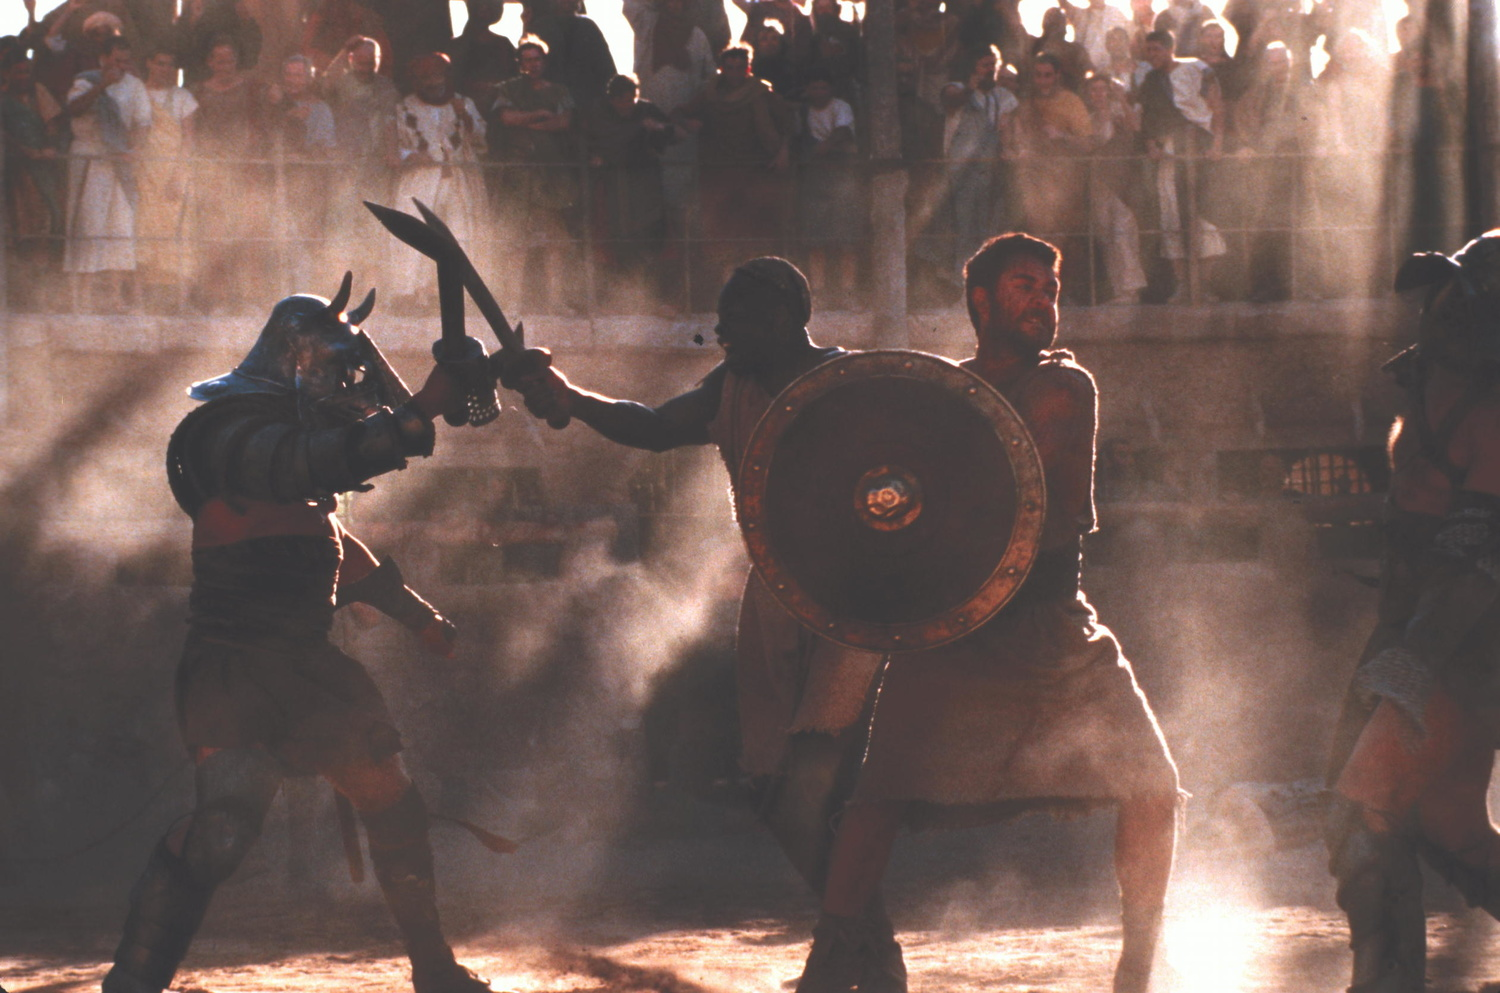 gladiator movie summary essay Immediately download the gladiator (2000 film) summary, chapter-by-chapter analysis, book notes, essays, quotes, character descriptions, lesson plans, and more.